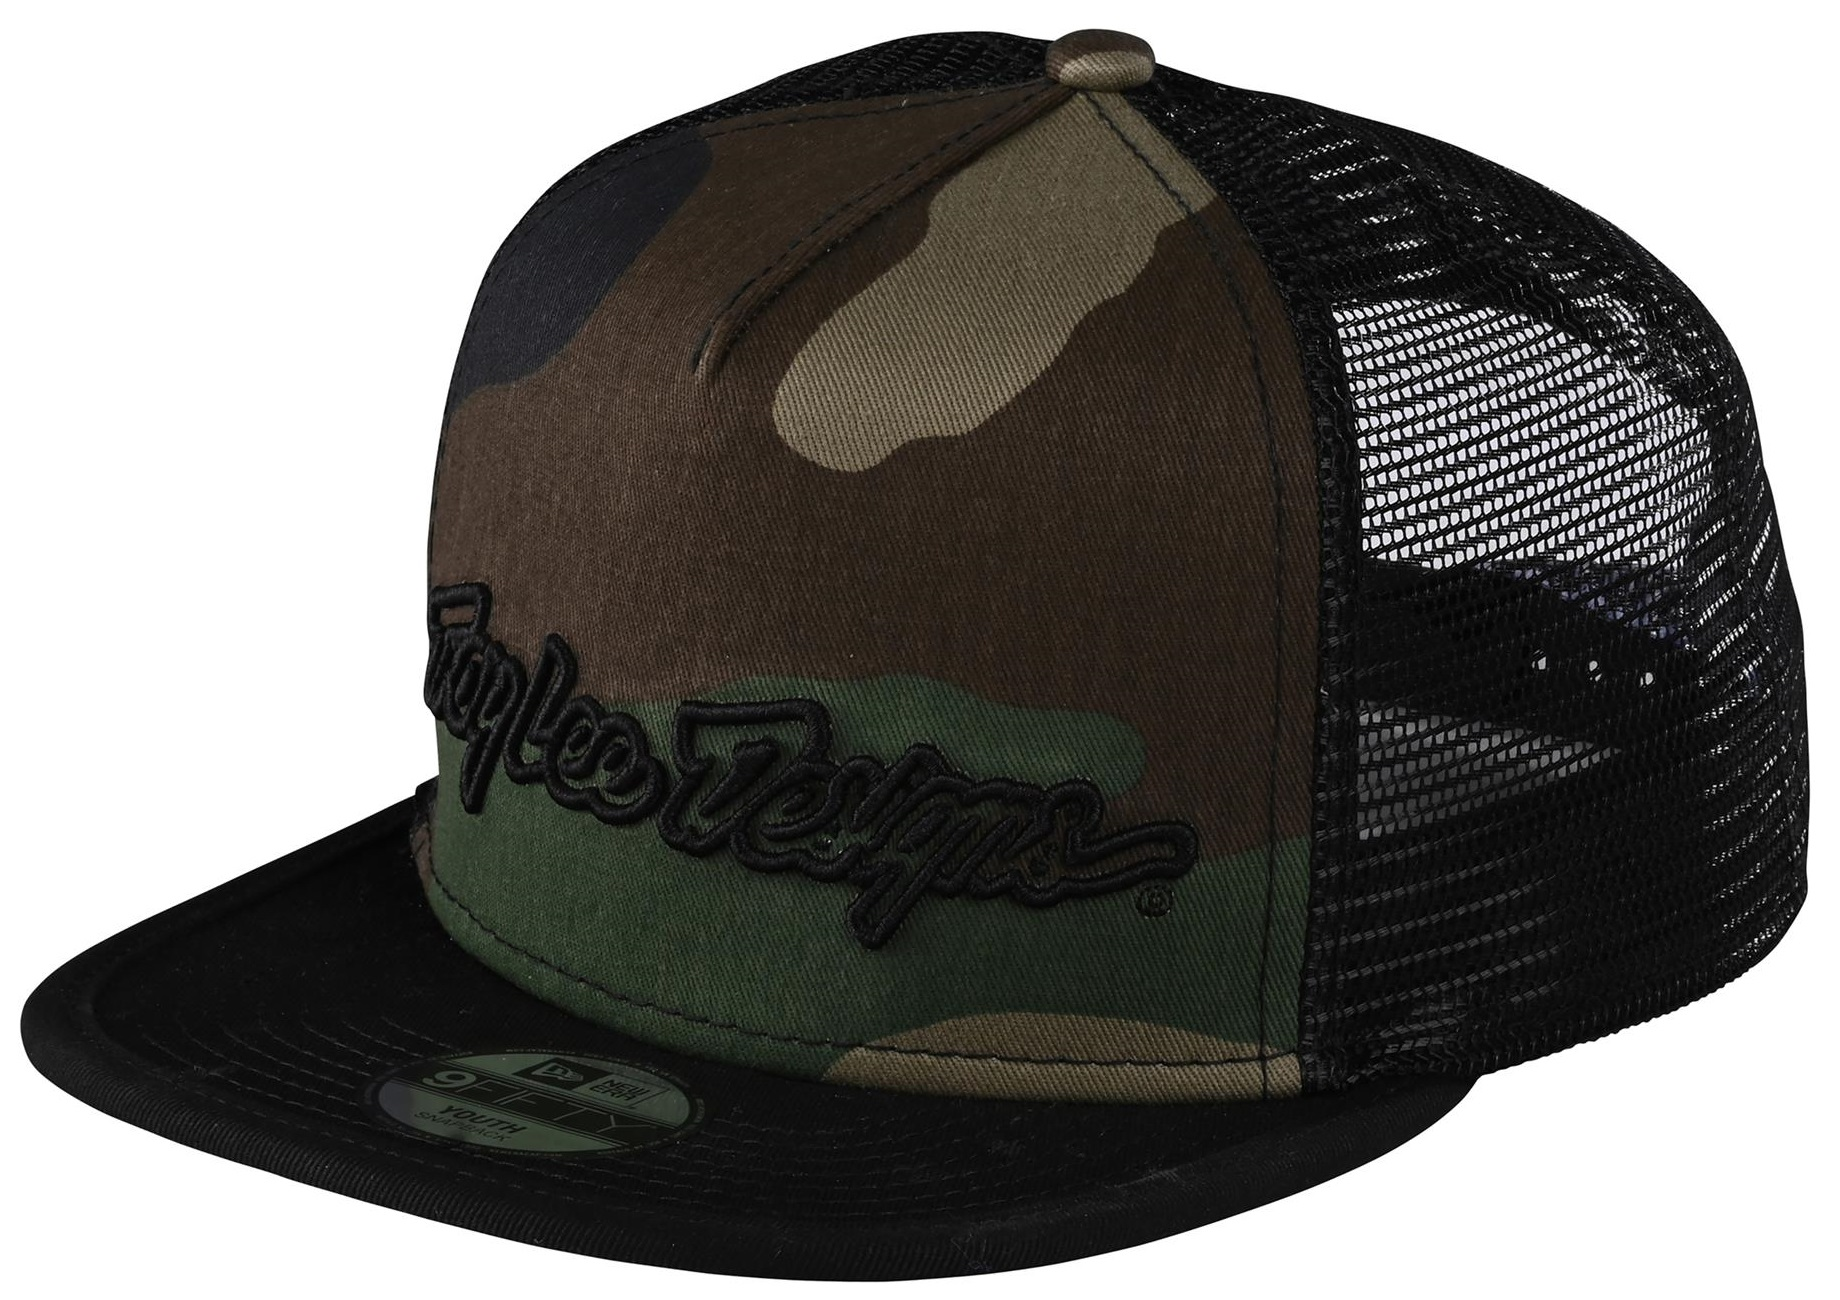 Troy Lee Designs Signature Youth Snapback Cap Army Camo Green